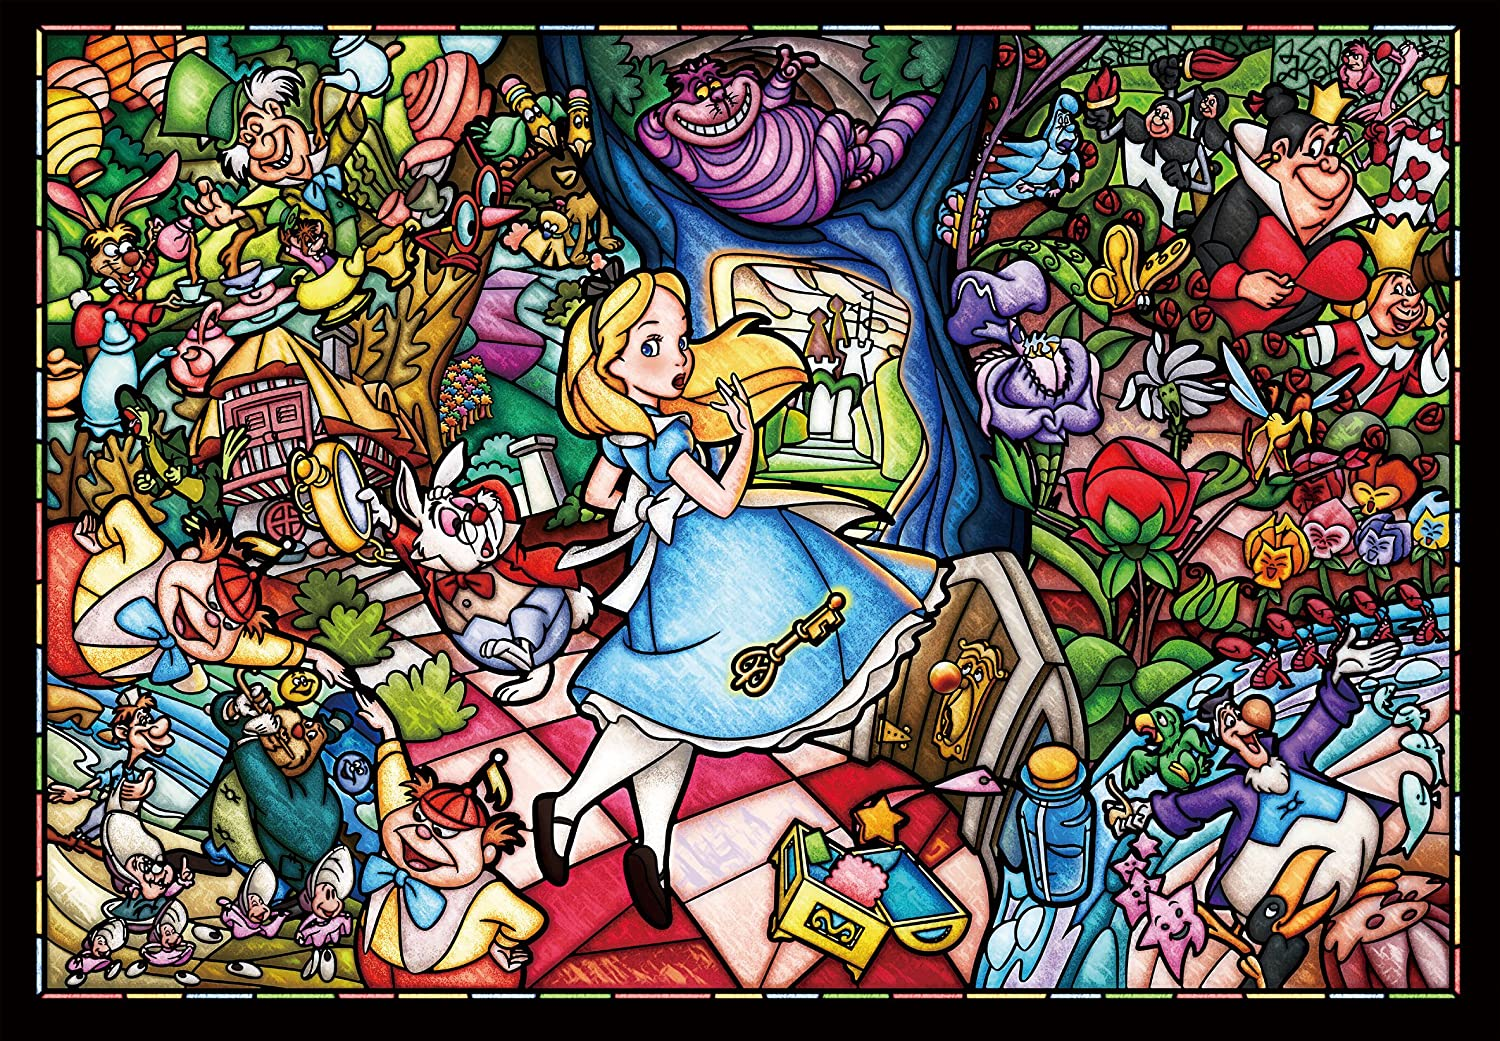 500 piece jigsaw puzzle stained art Alice in Wonderland story stained glass tightly series small pieces 25x36cm